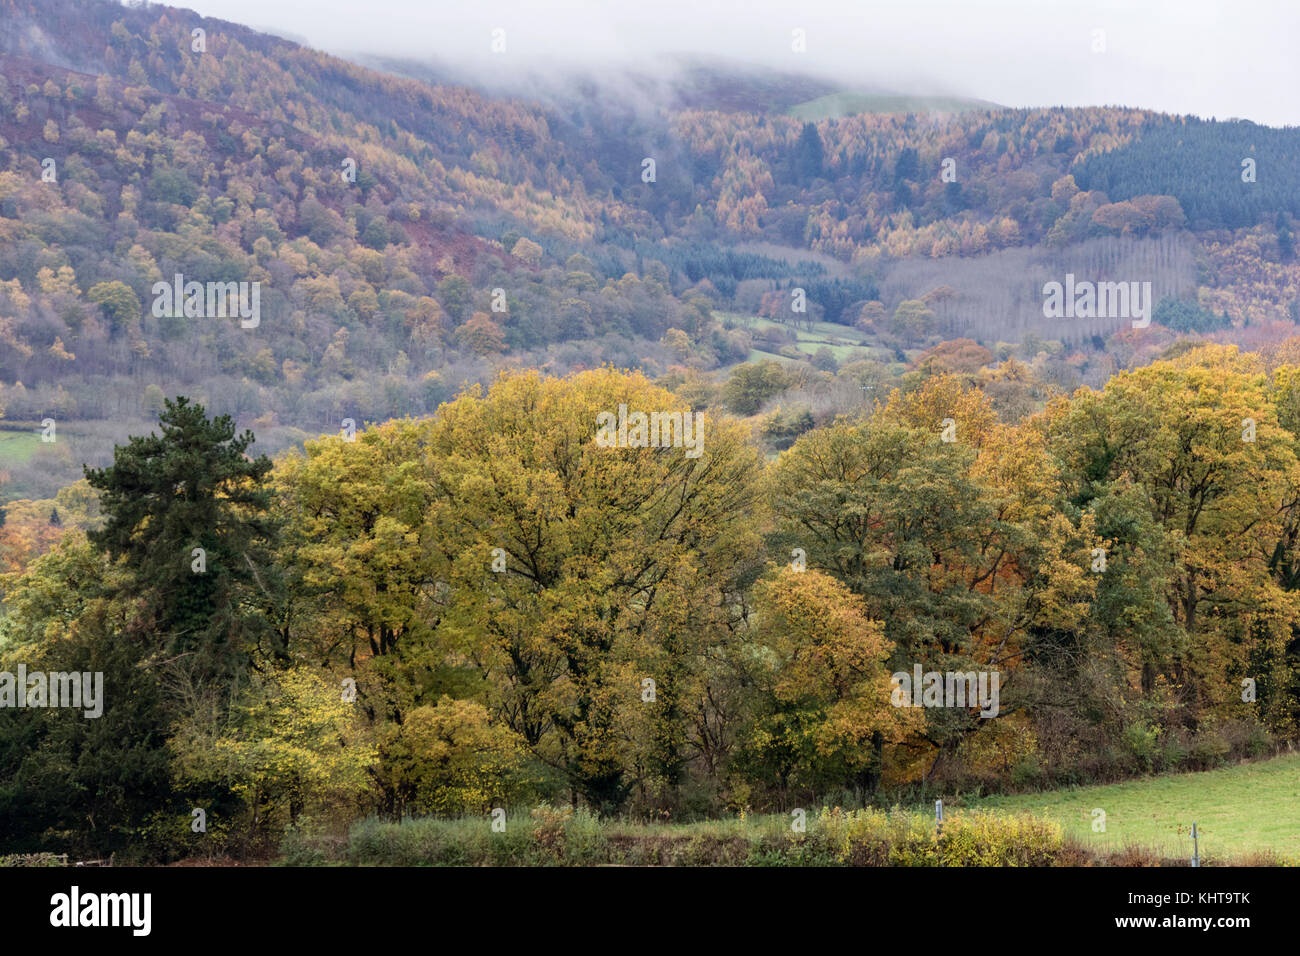 Autumn in the Dee Valley near Llangollen, North Wales, UK Stock Photo